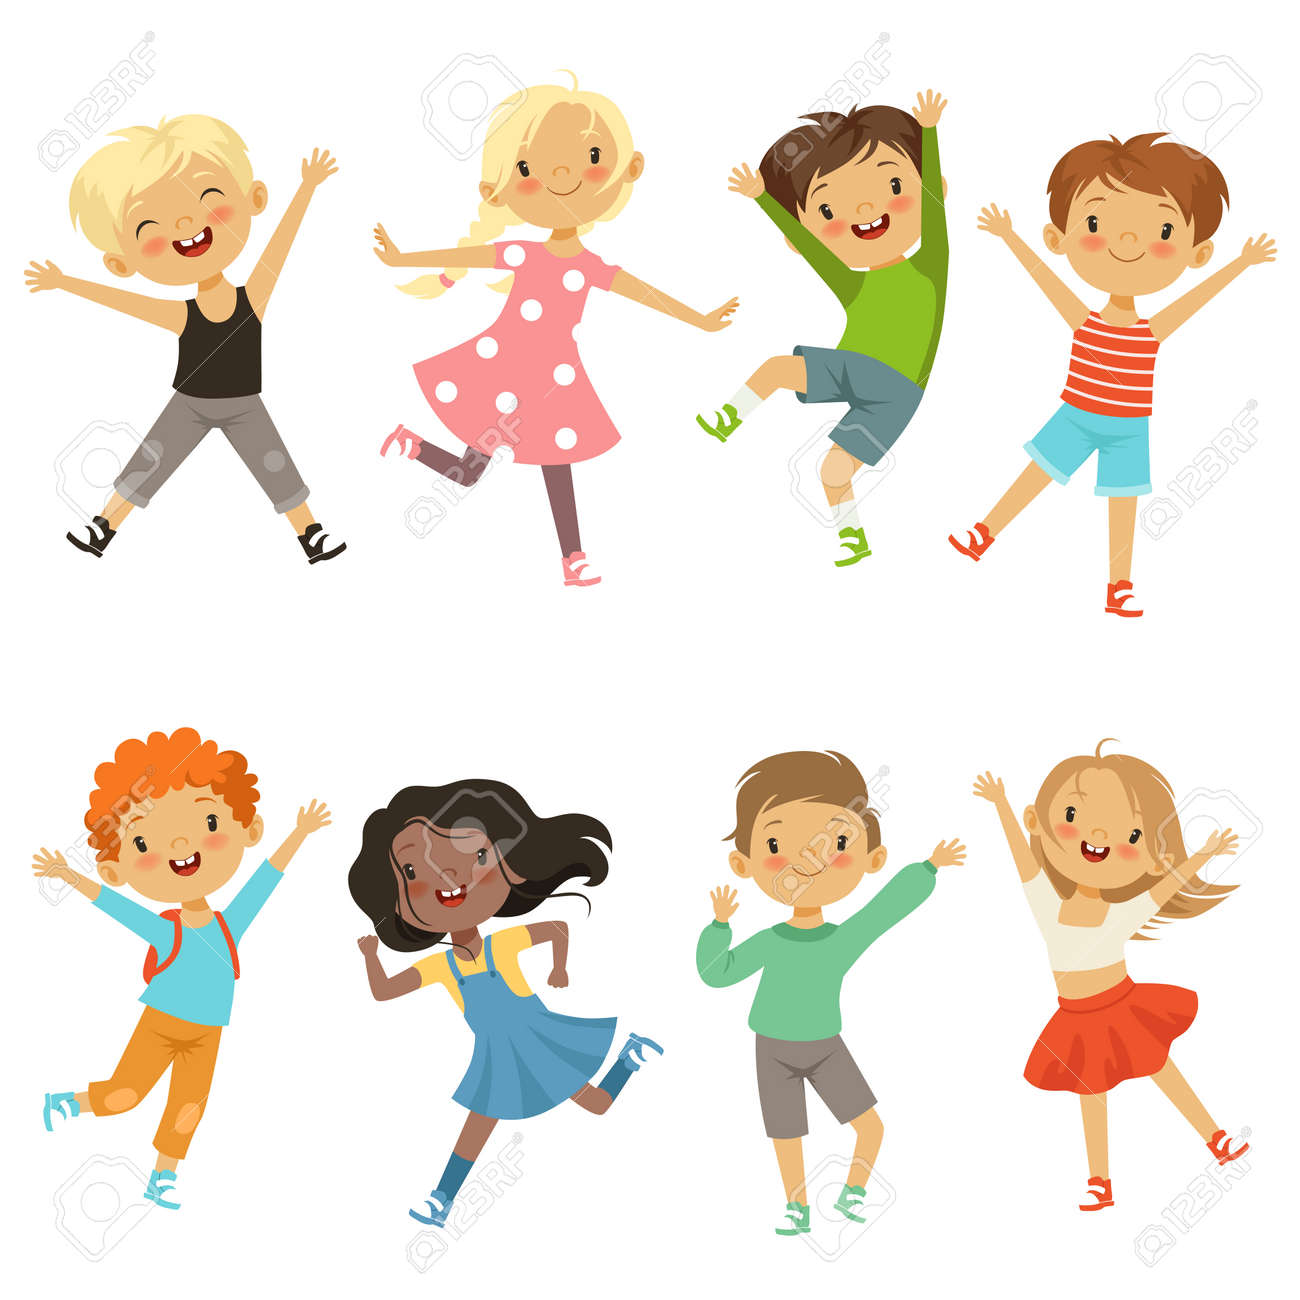 Active kids in different action poses. Vector illustrations - 167394470